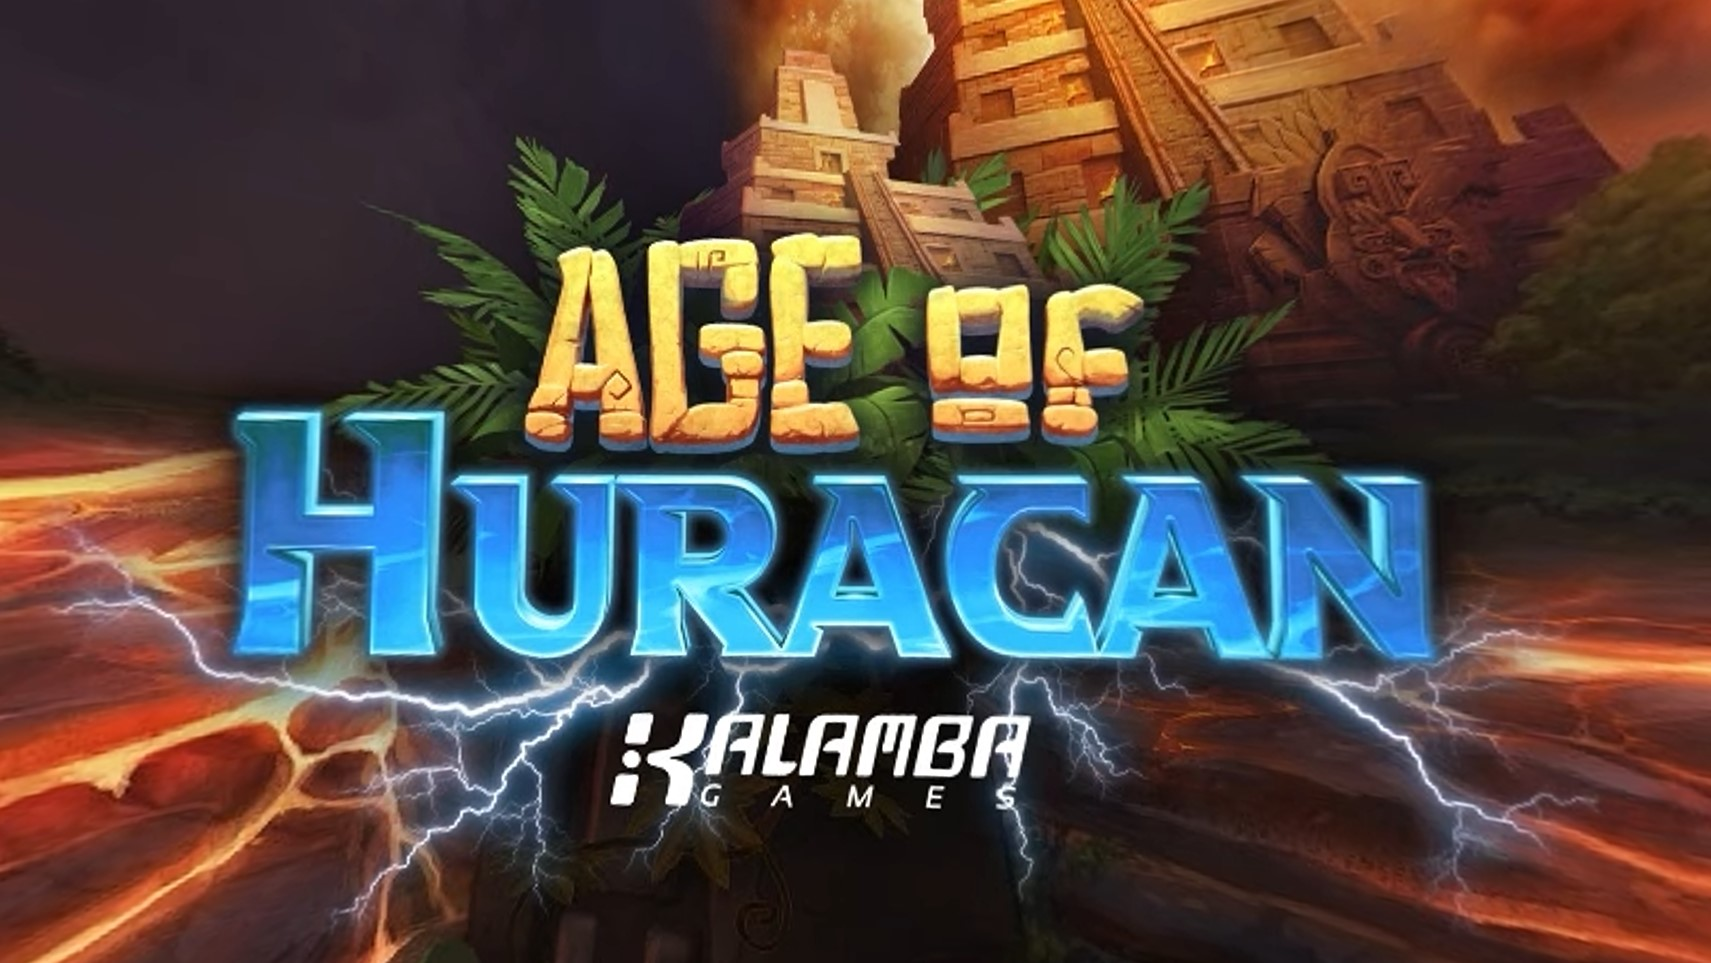 Age of Huracan is a 5x4, 1,024-payline slot set in the Mayan temples featuring k-cash hurricane symbols, bonus rounds and free spins.